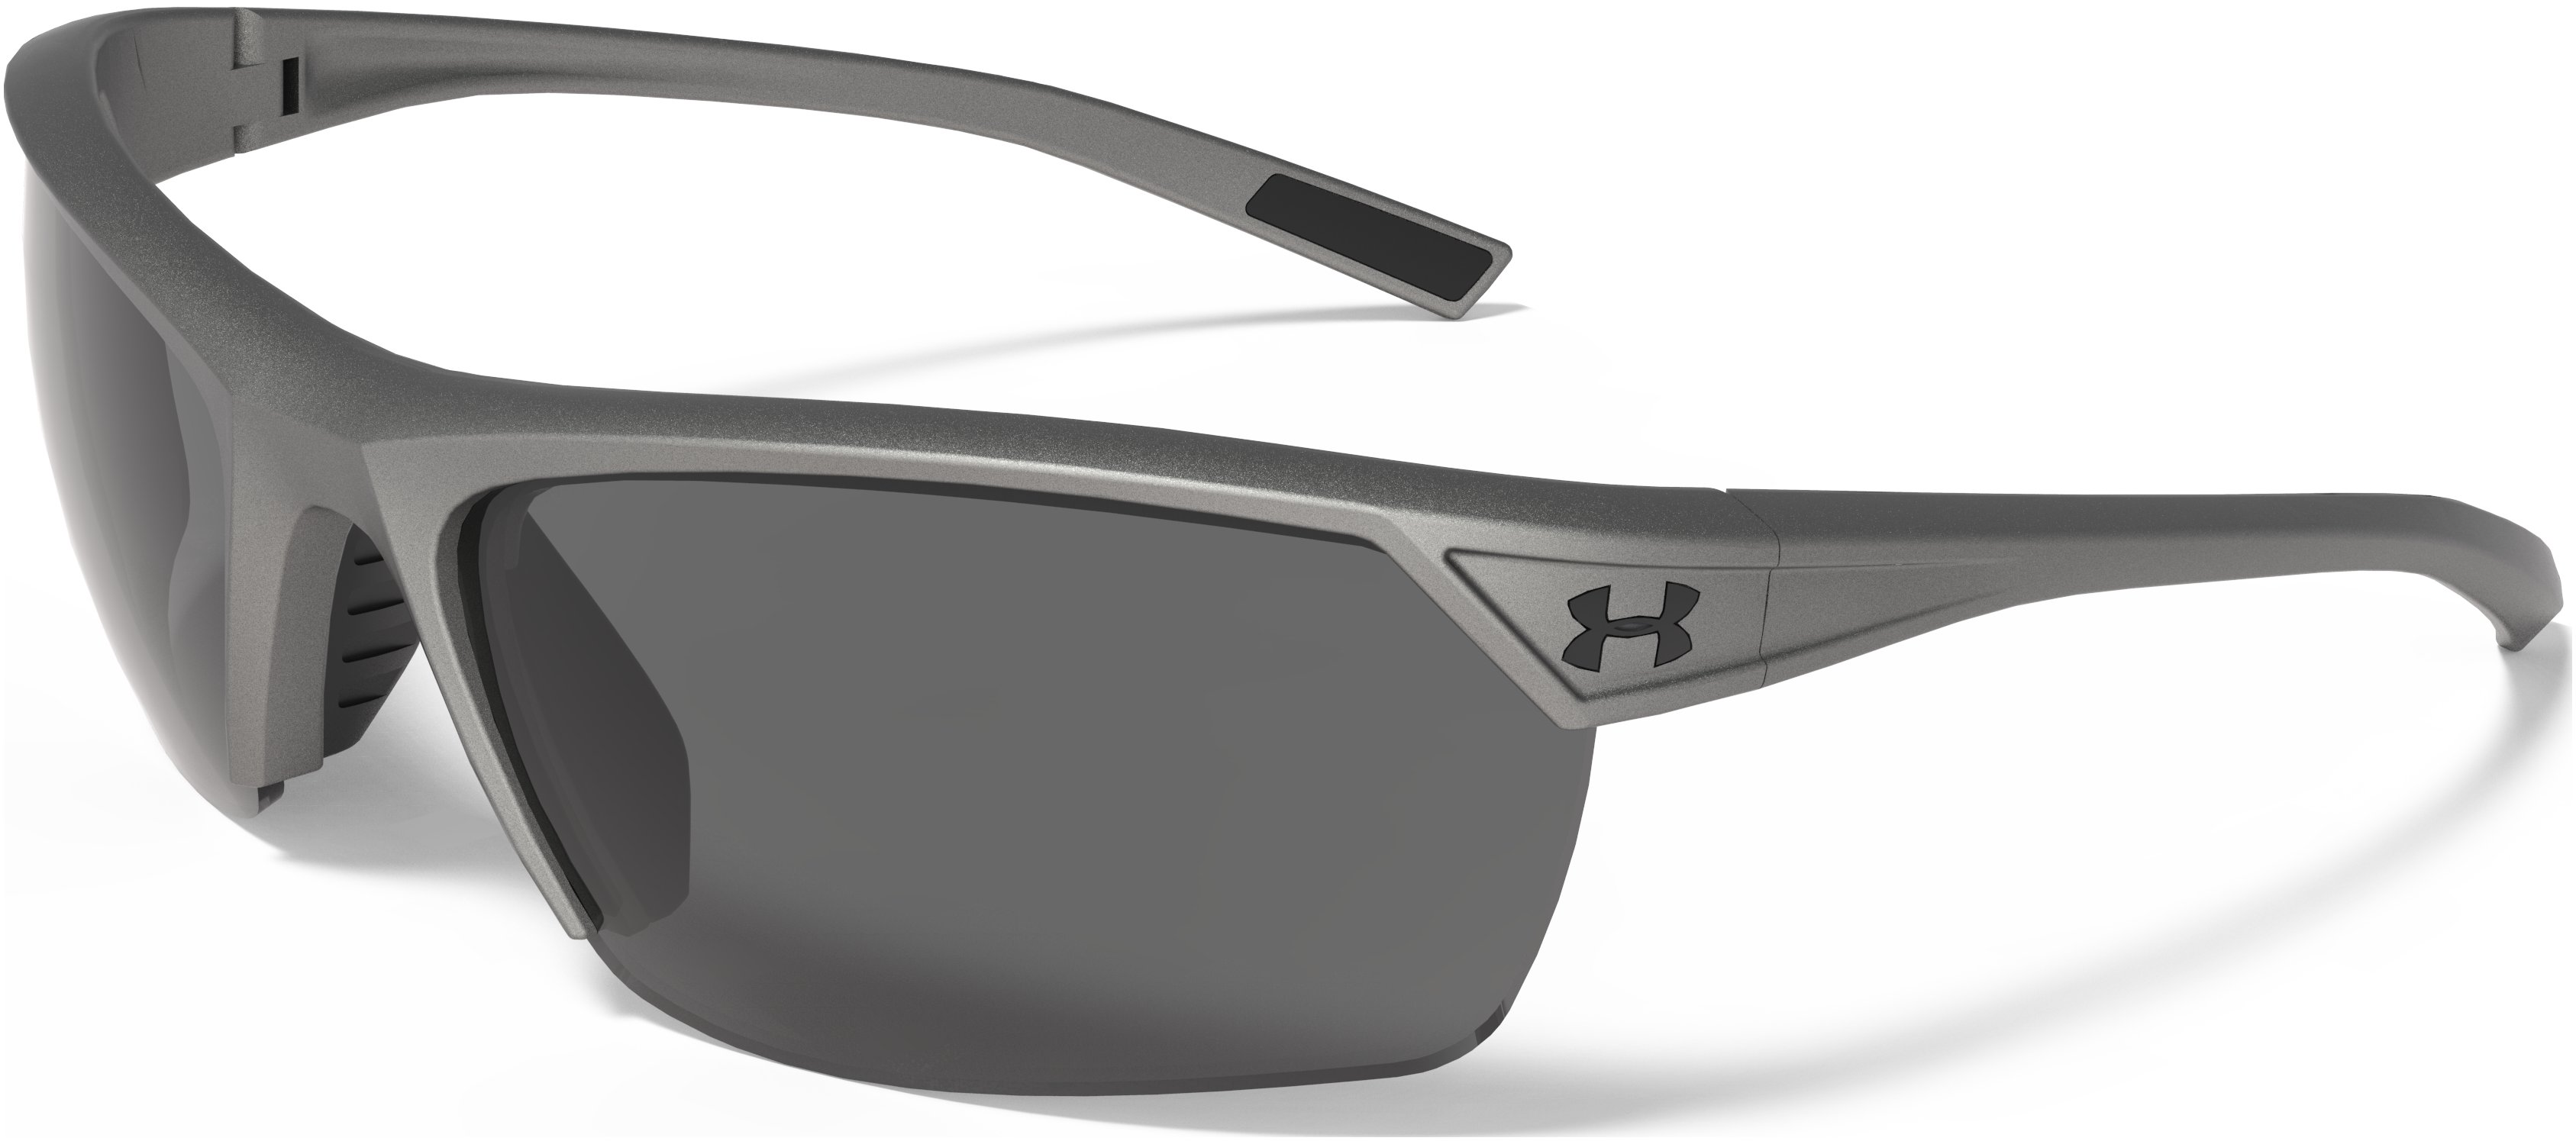 UA Zone 2.0 Storm Polarized Sunglasses, Satin Carbon